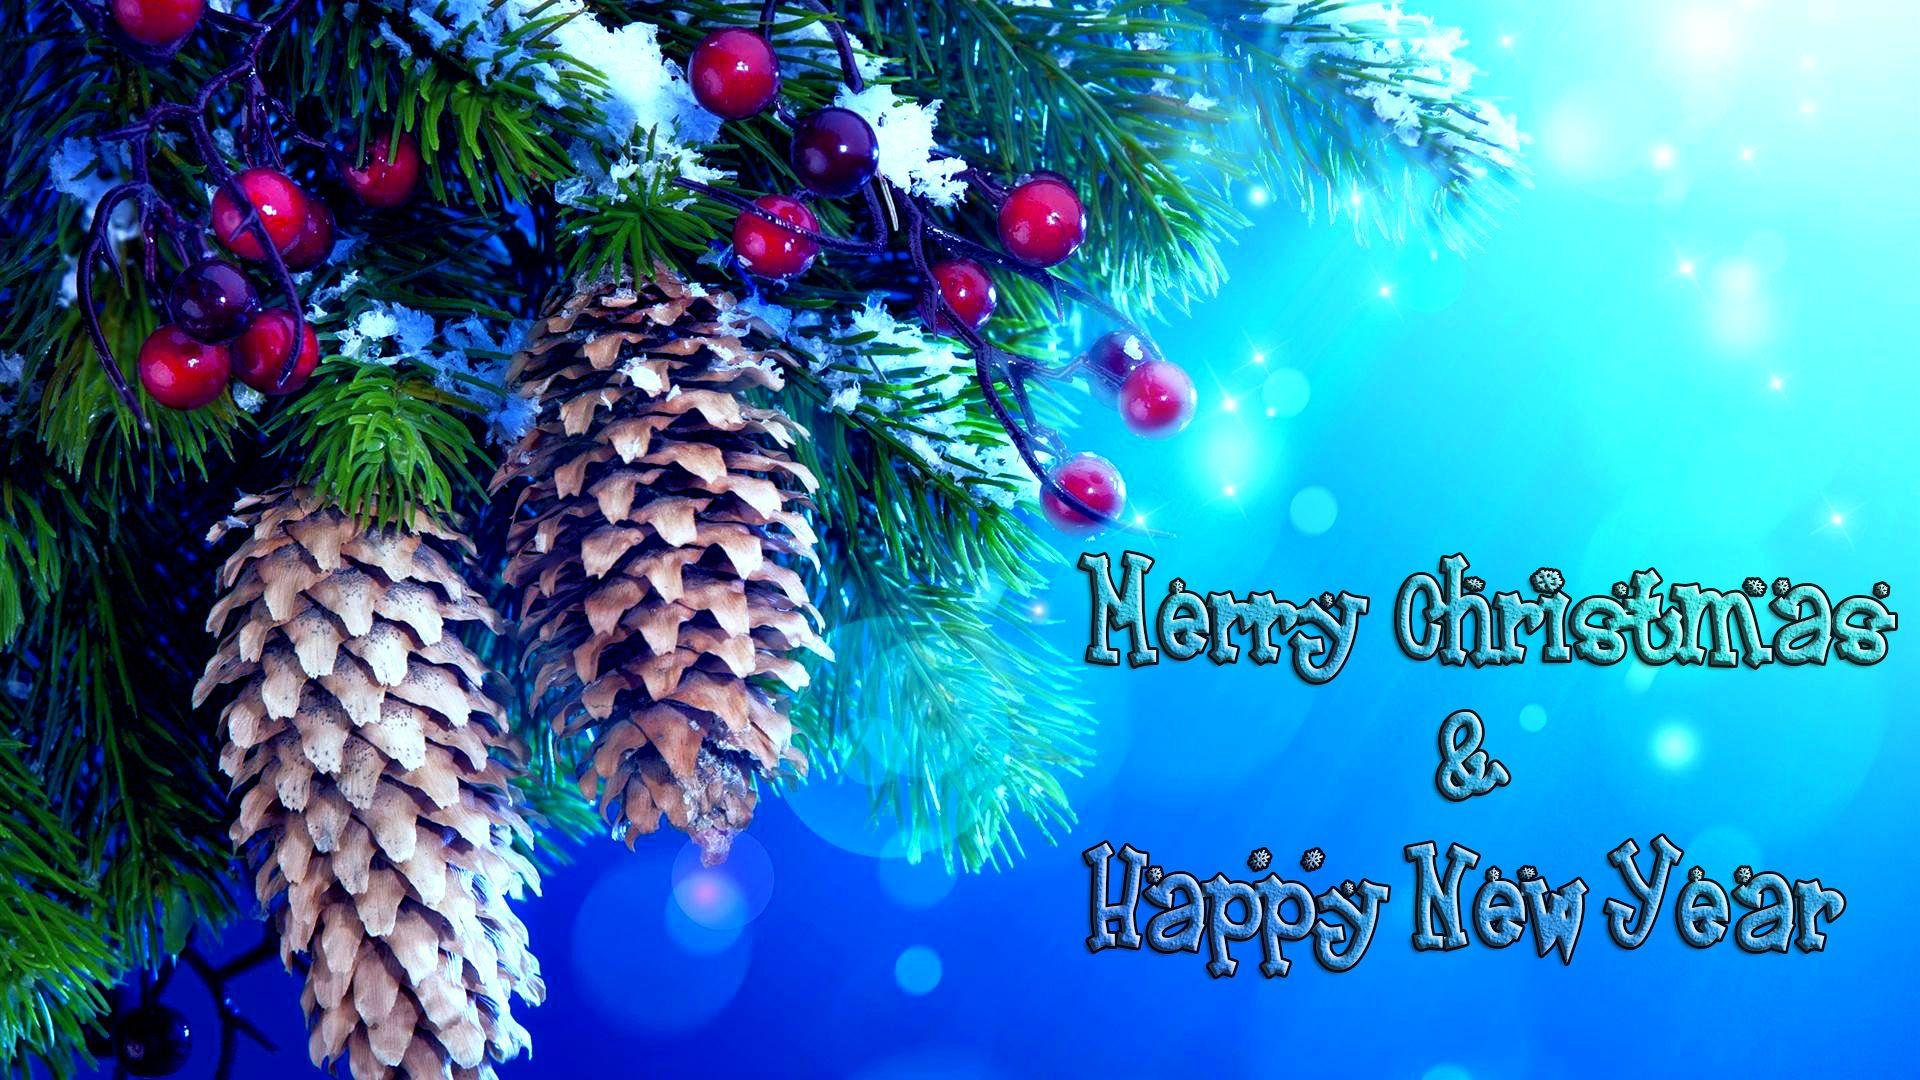 Best Merry Christmas 2018 and Happy New Year 2019 Images, Quotes ...